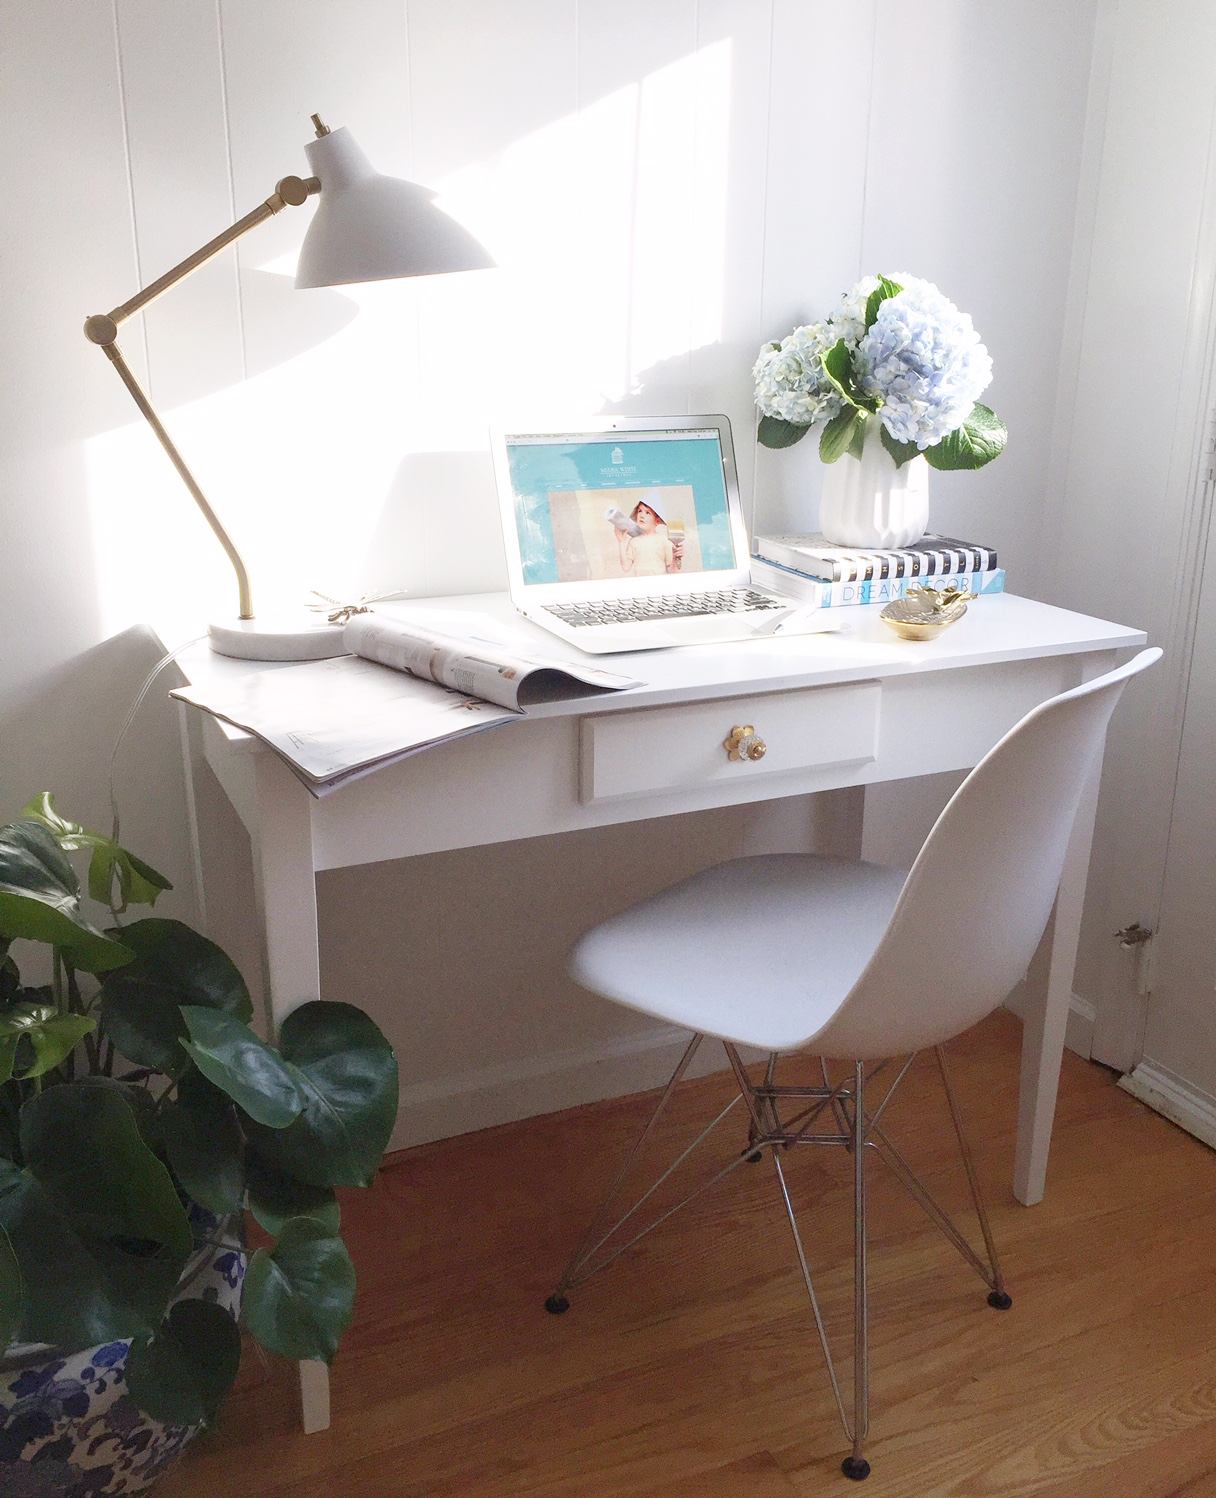 Meet the Babe Behind the Biz: Melisa White Interiors | Melisa's workspace | www.nestlingcollective.com